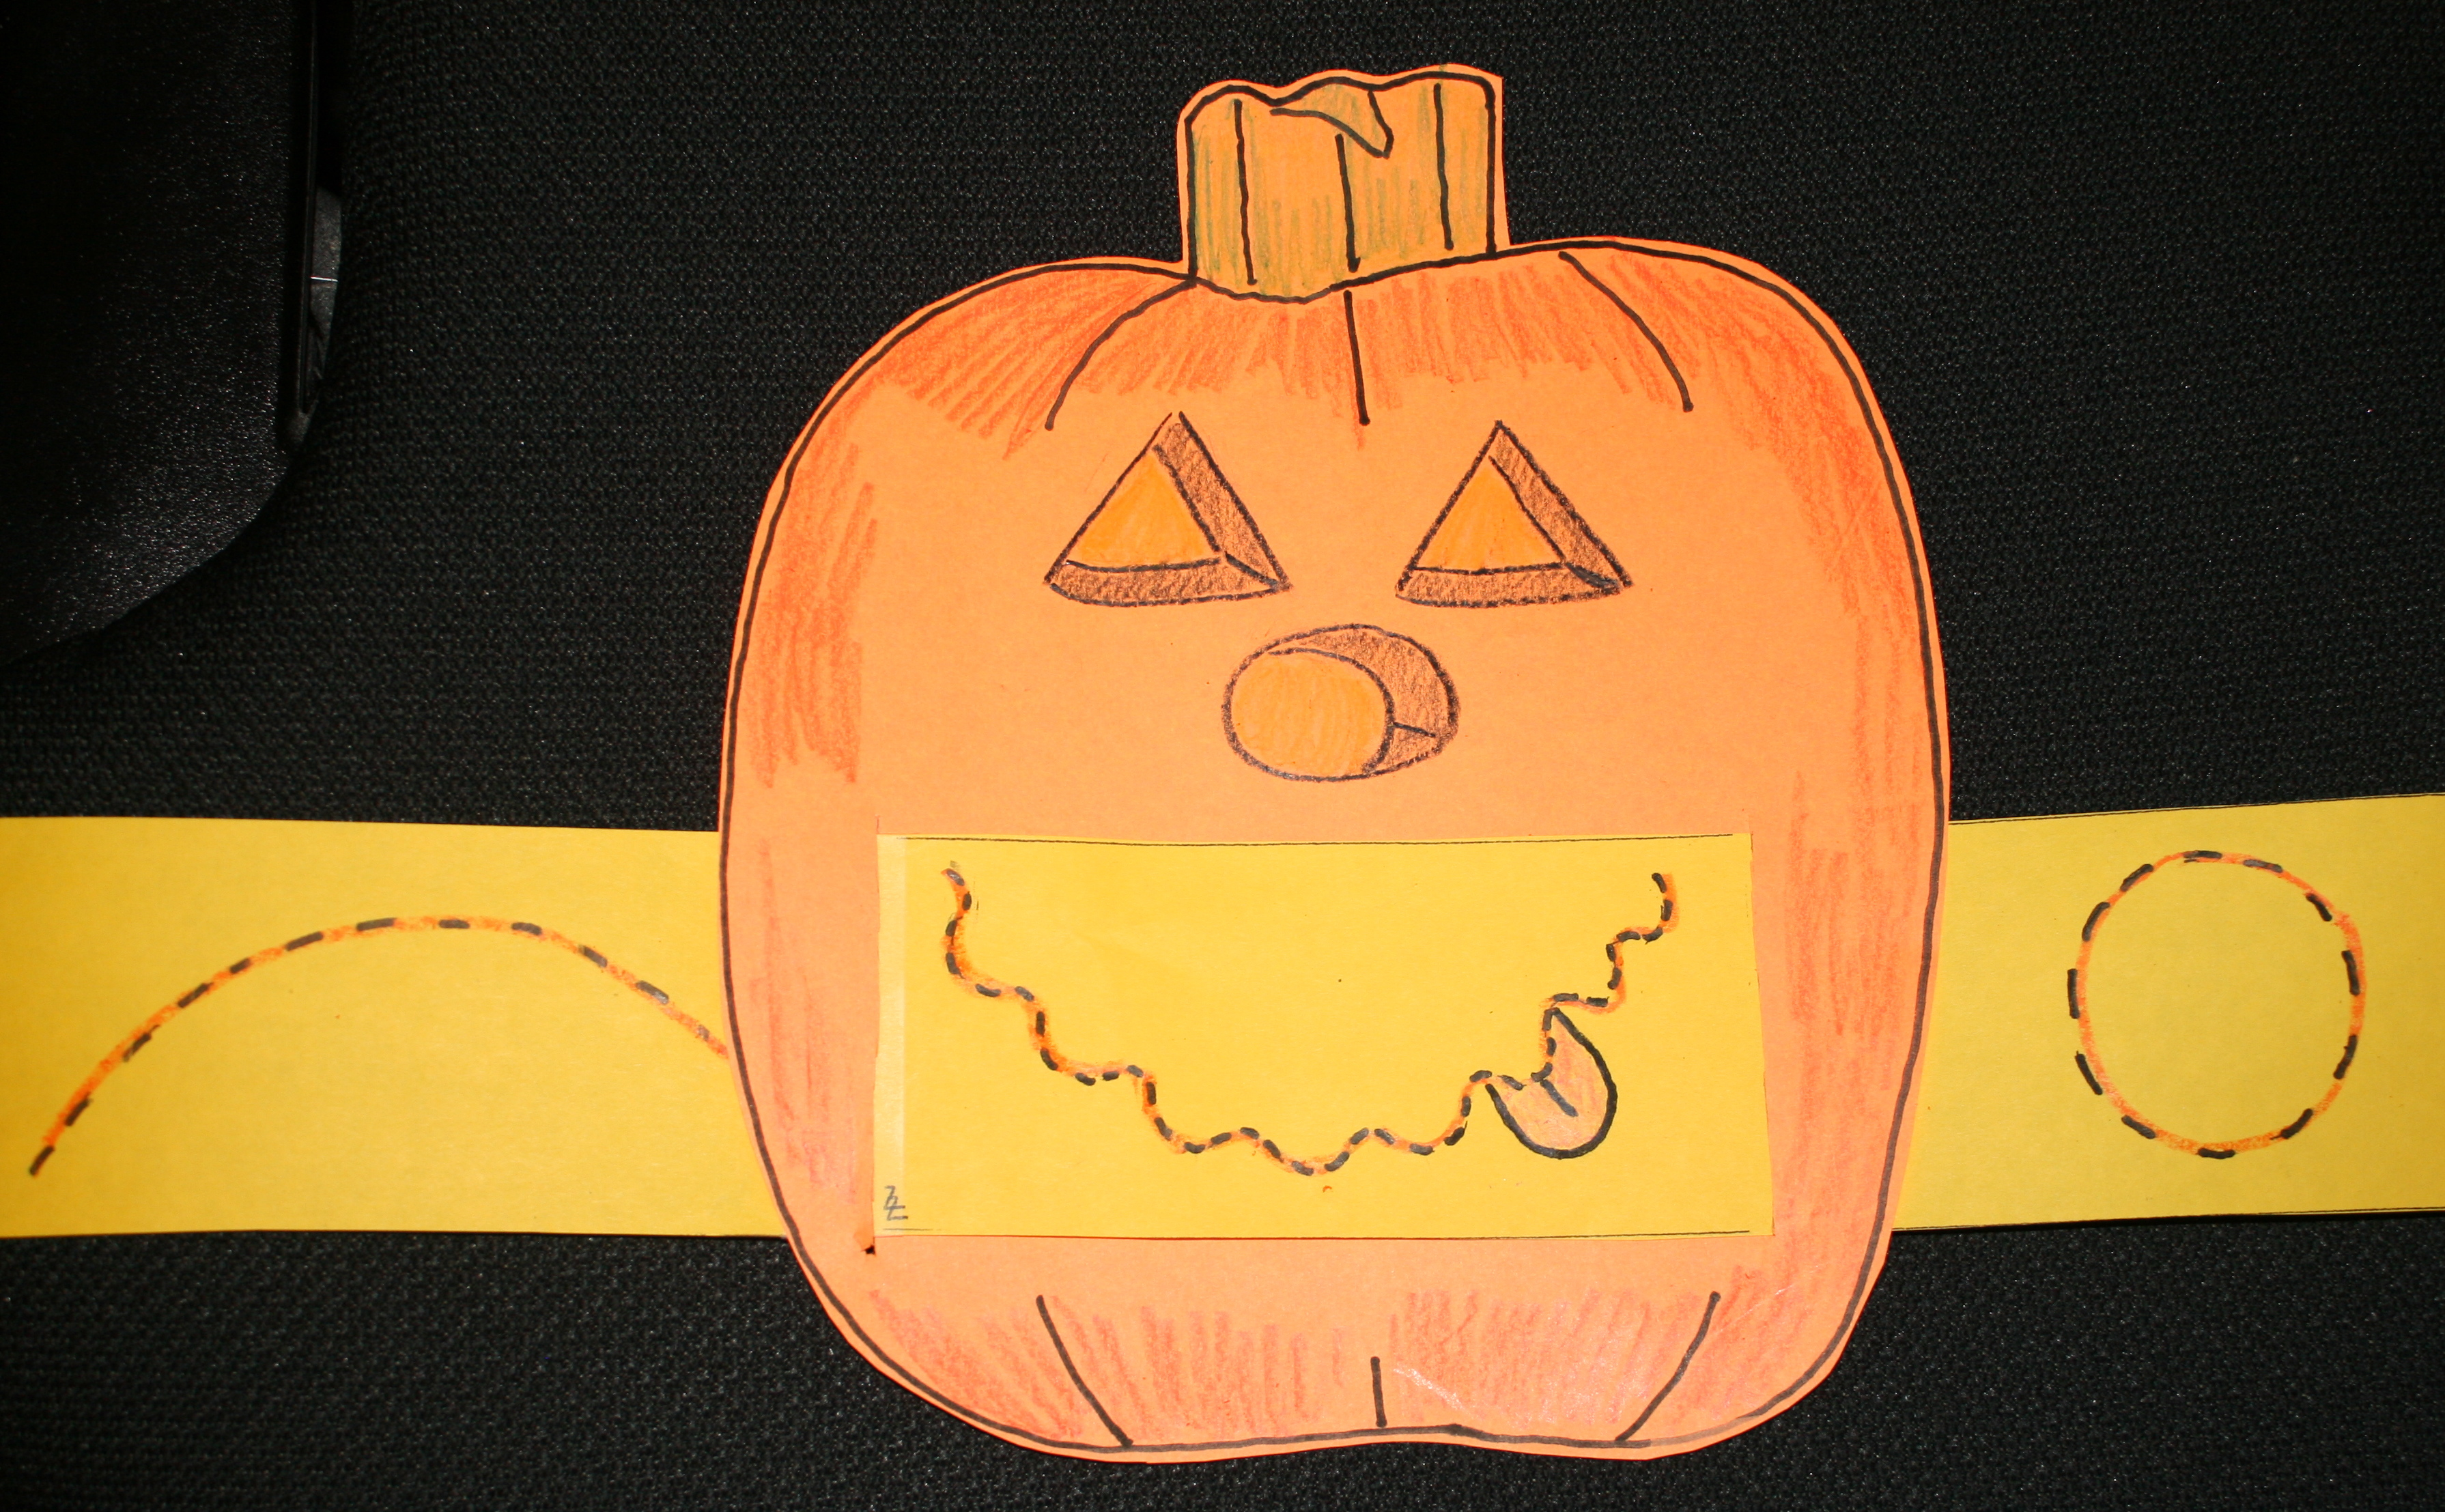 Freebie Feelings Pumpkin Mouth craft, pumpkin activities, halloween crafts, pumpkin crafts, pumpkin centers